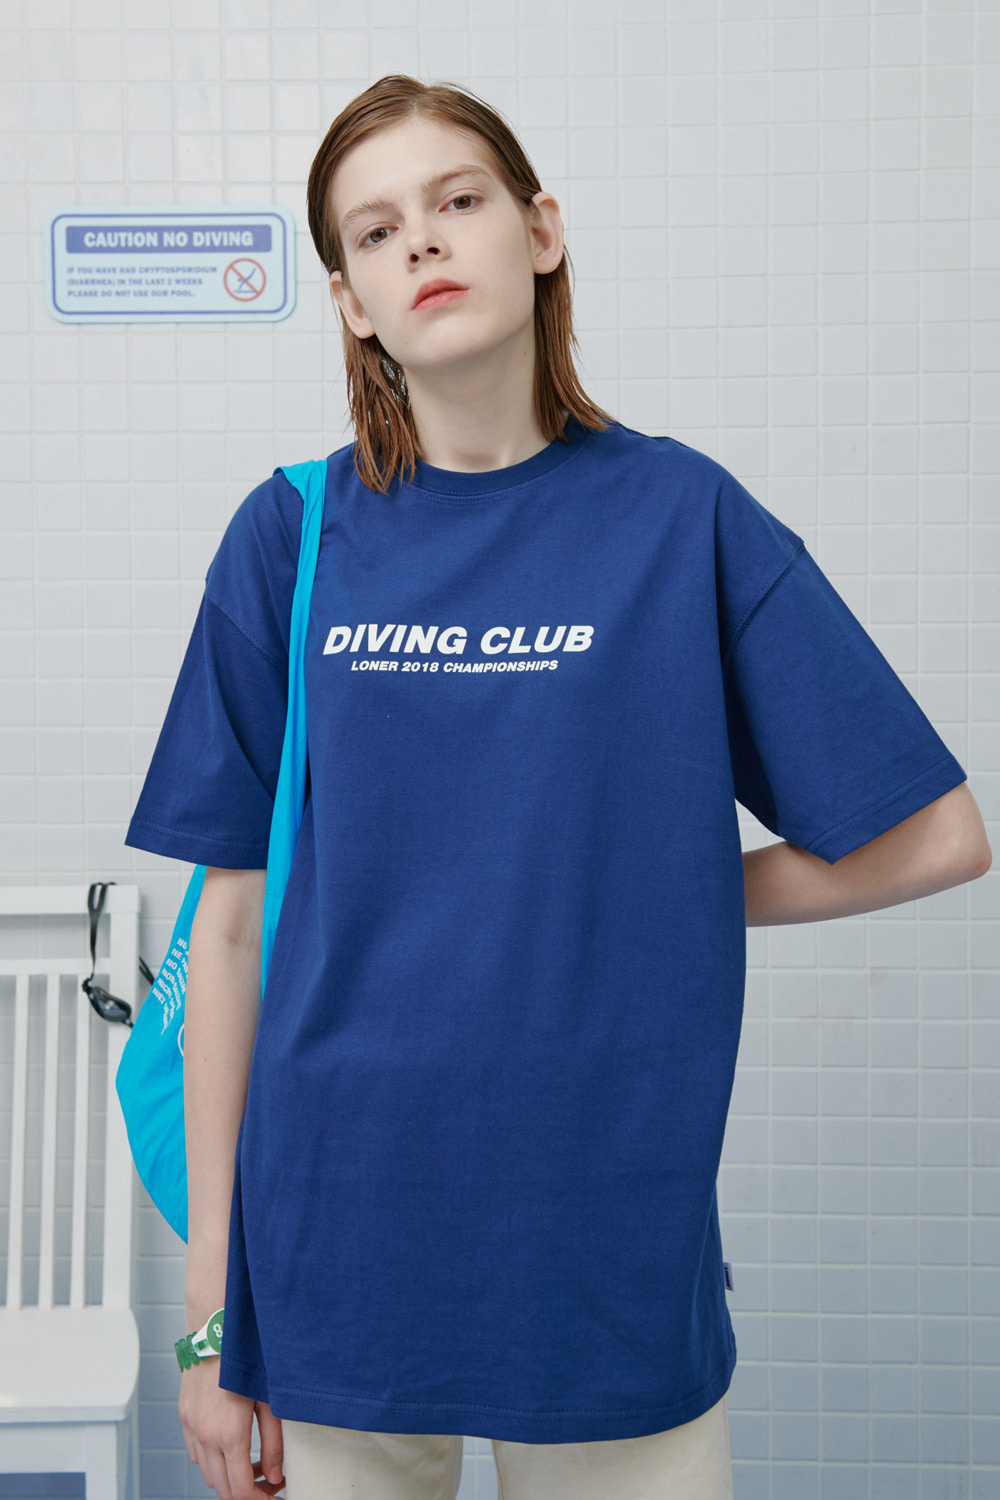 Diving club tshirt-dark blue (기간한정 09.11 - 09.17)